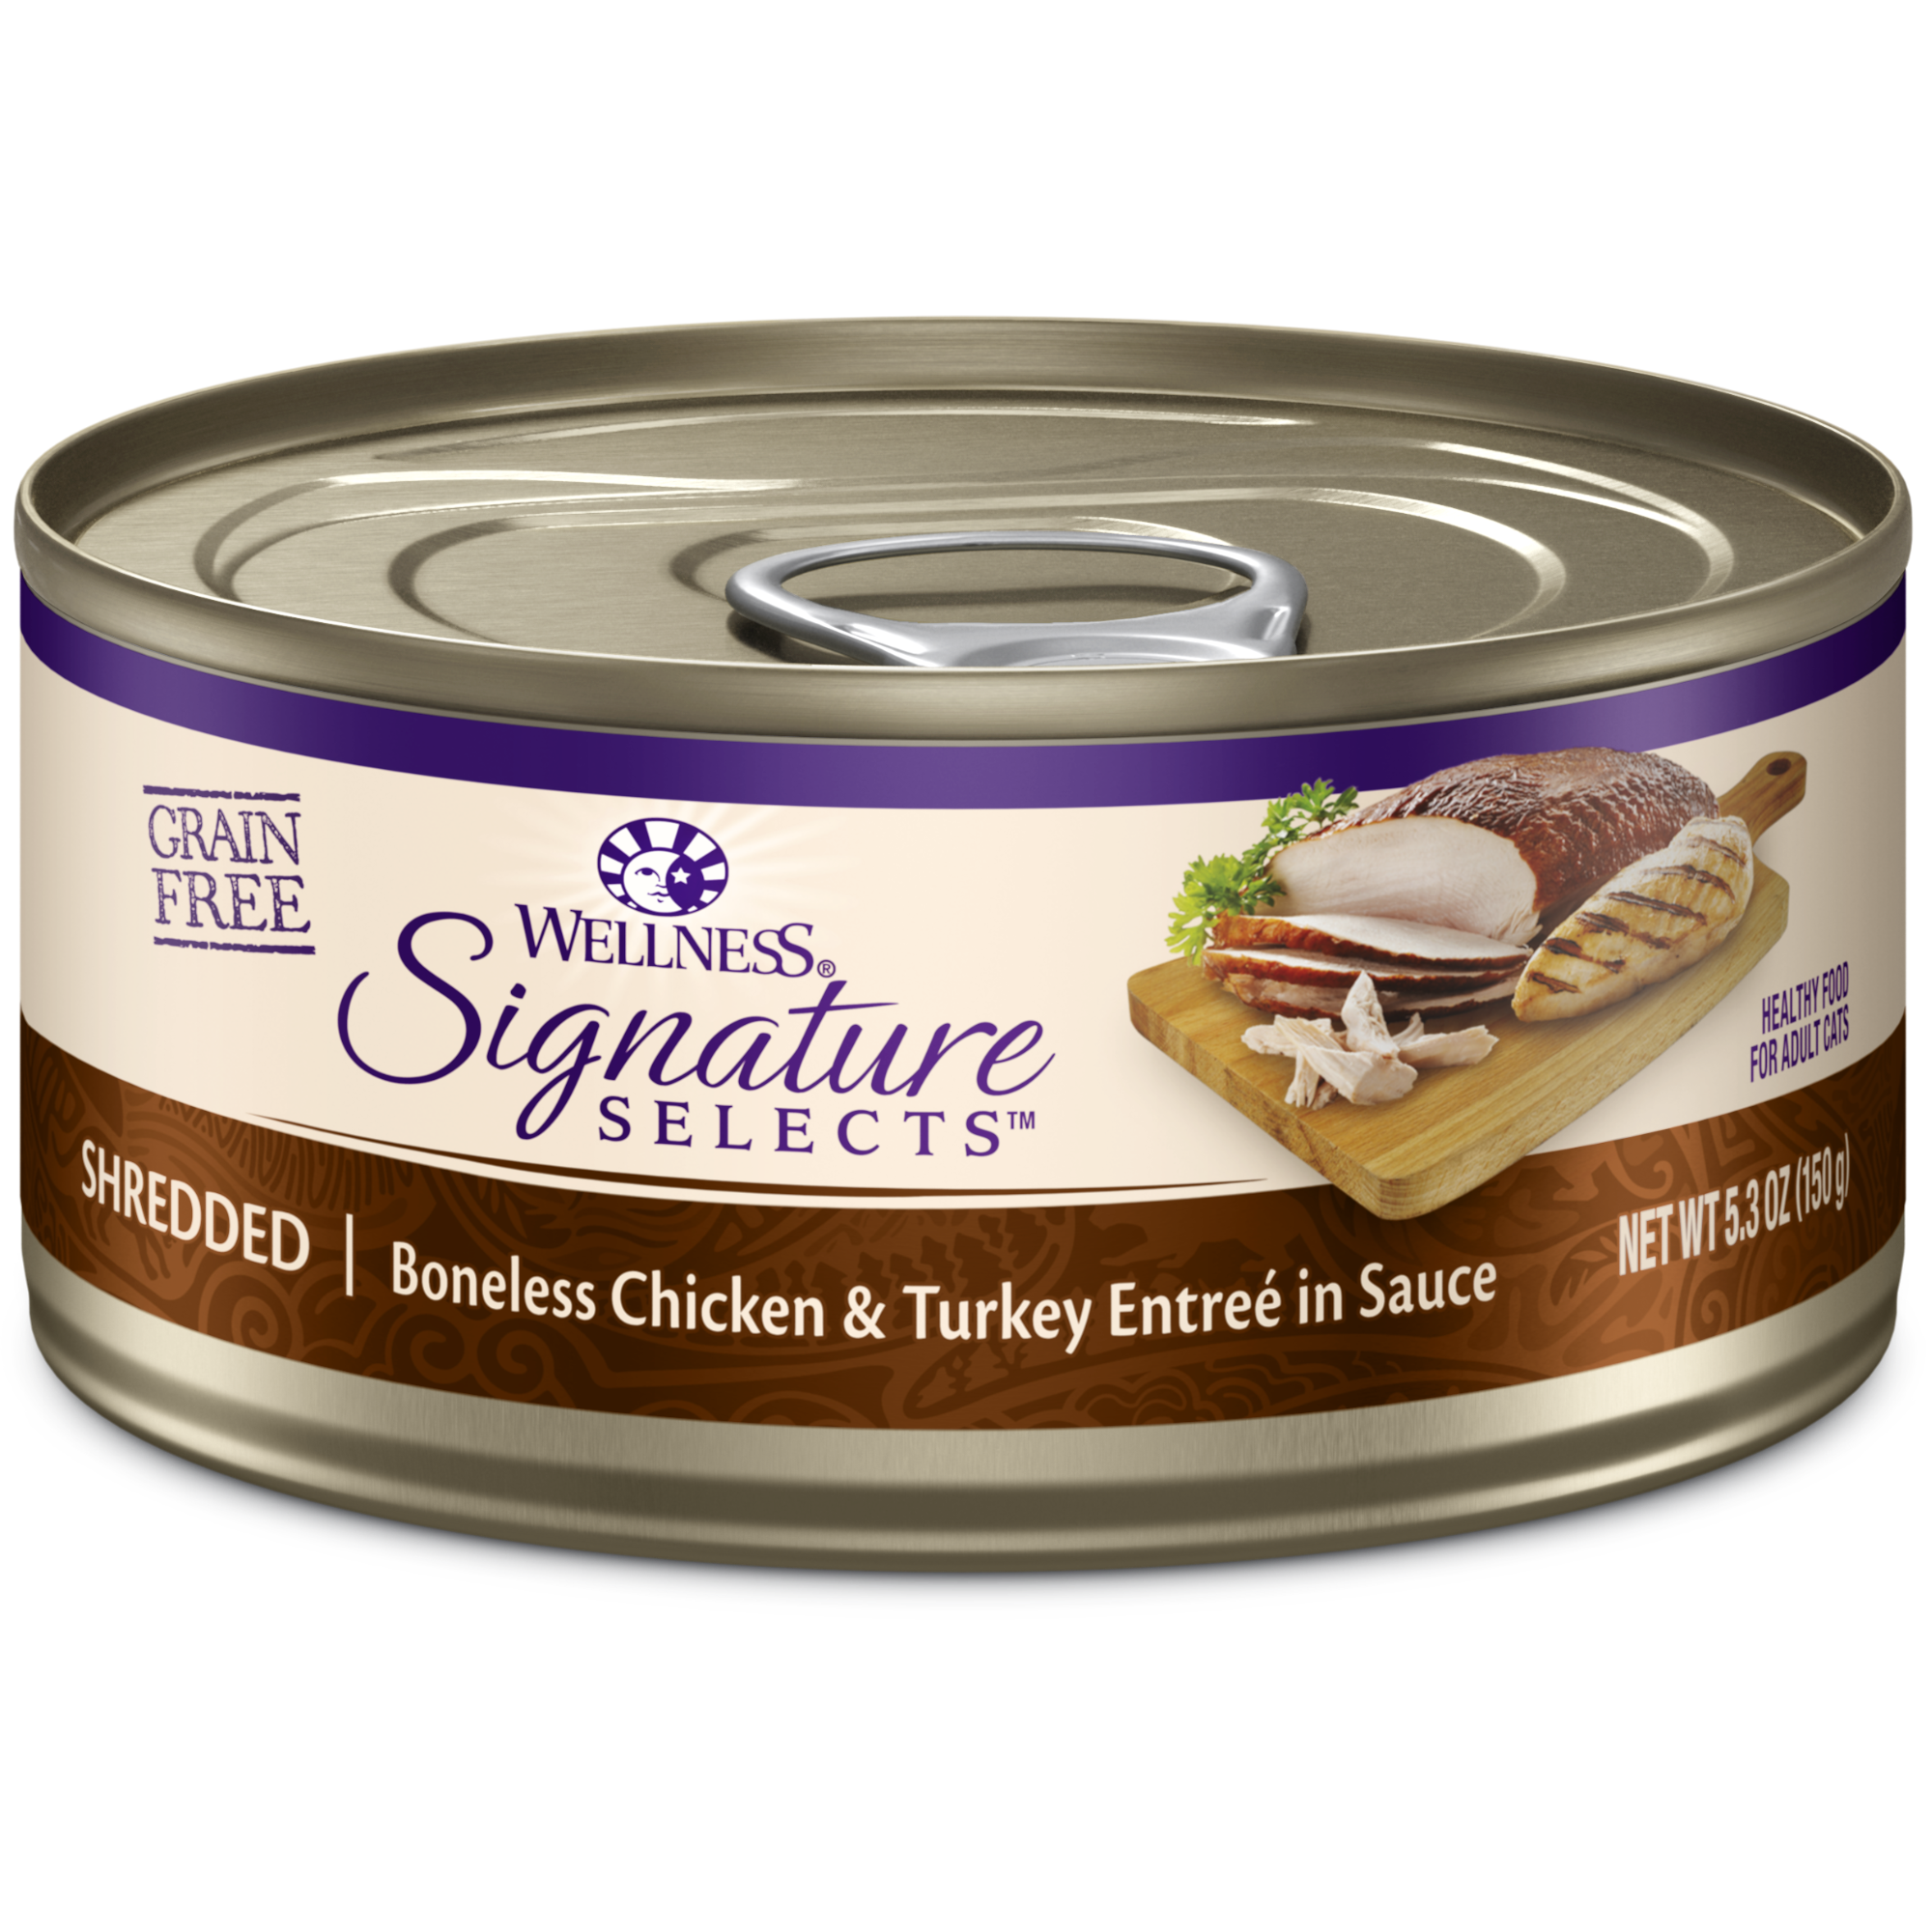 Signature Selects Shredded Chicken and Turkey